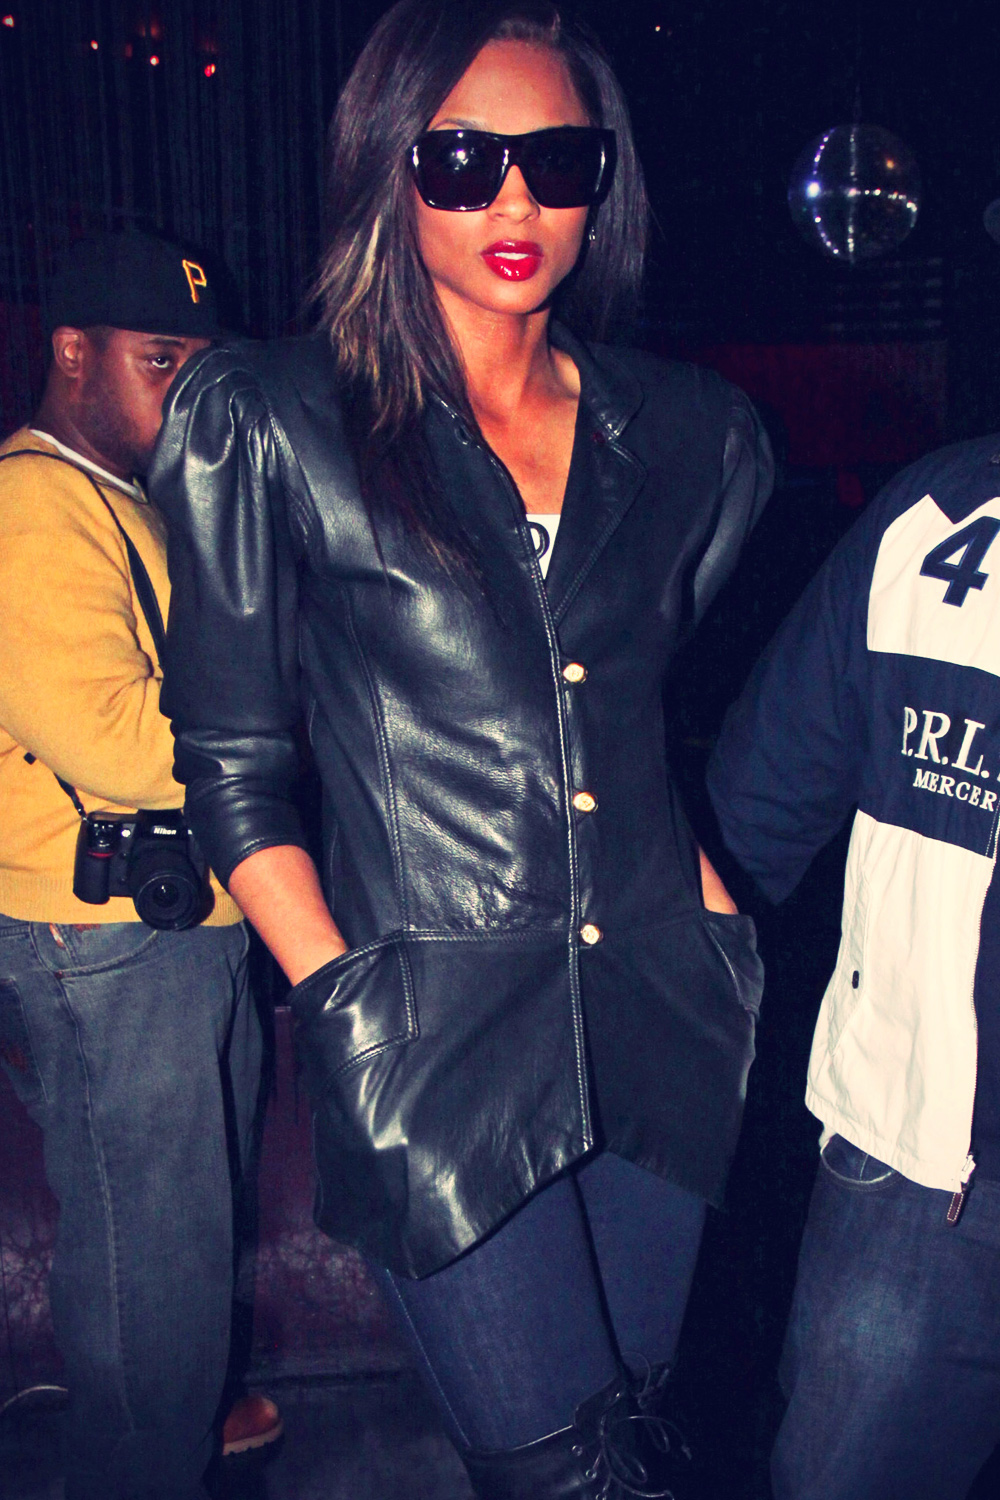 Ciara at Prime grand opening of Next Level